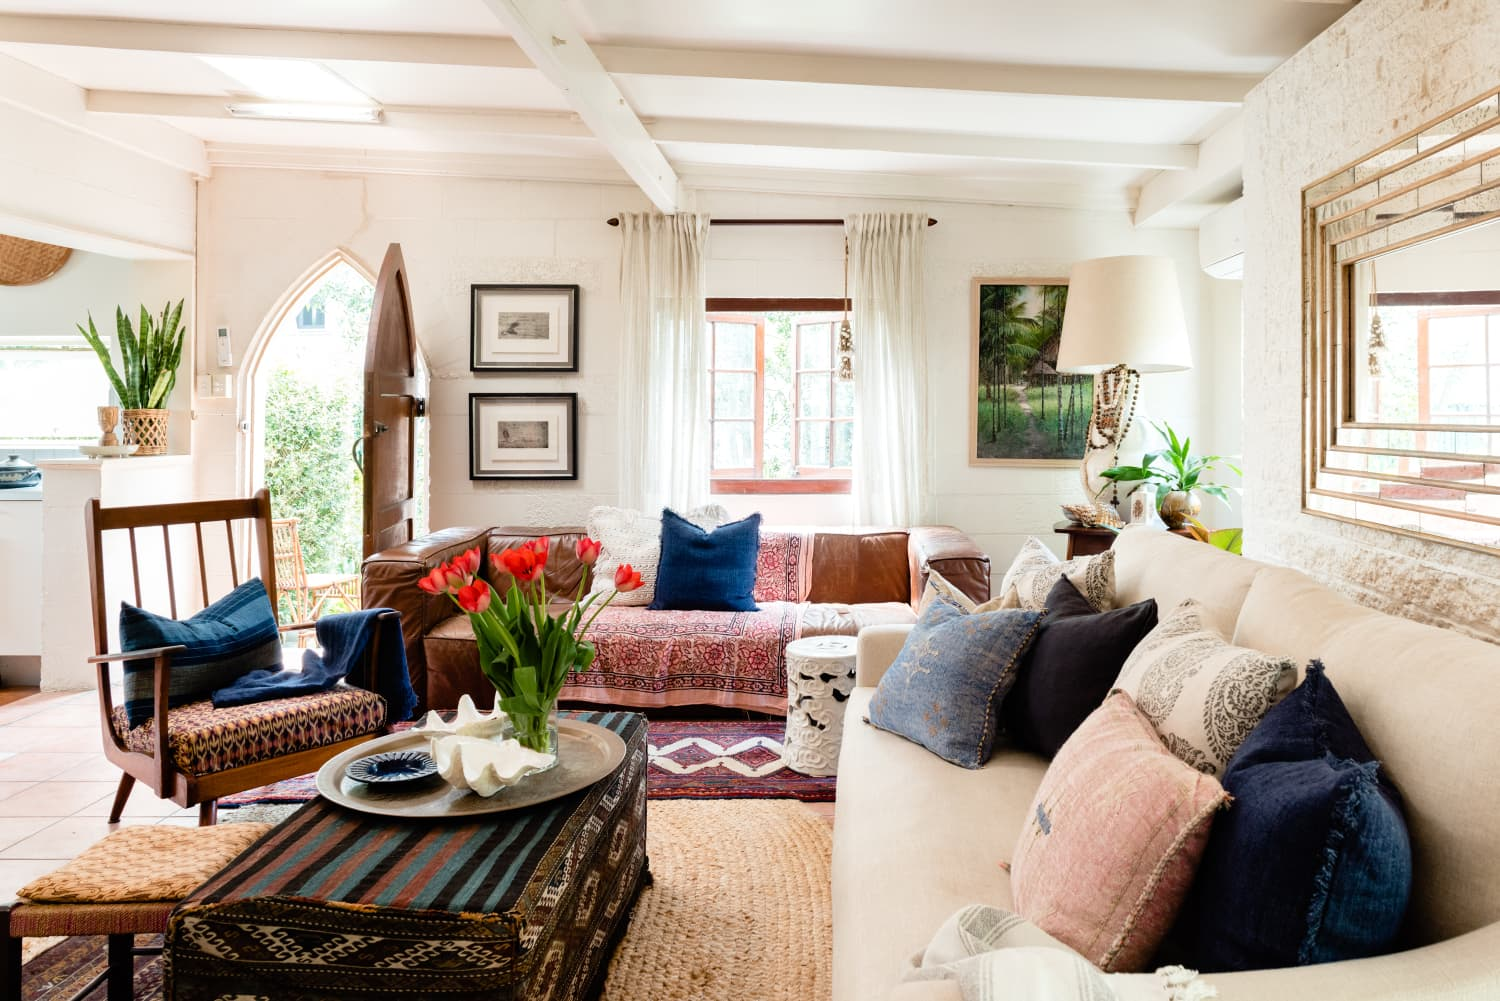 It's Hard to Pick a Fave Room in This Interior Designer's Cozy Australian Home